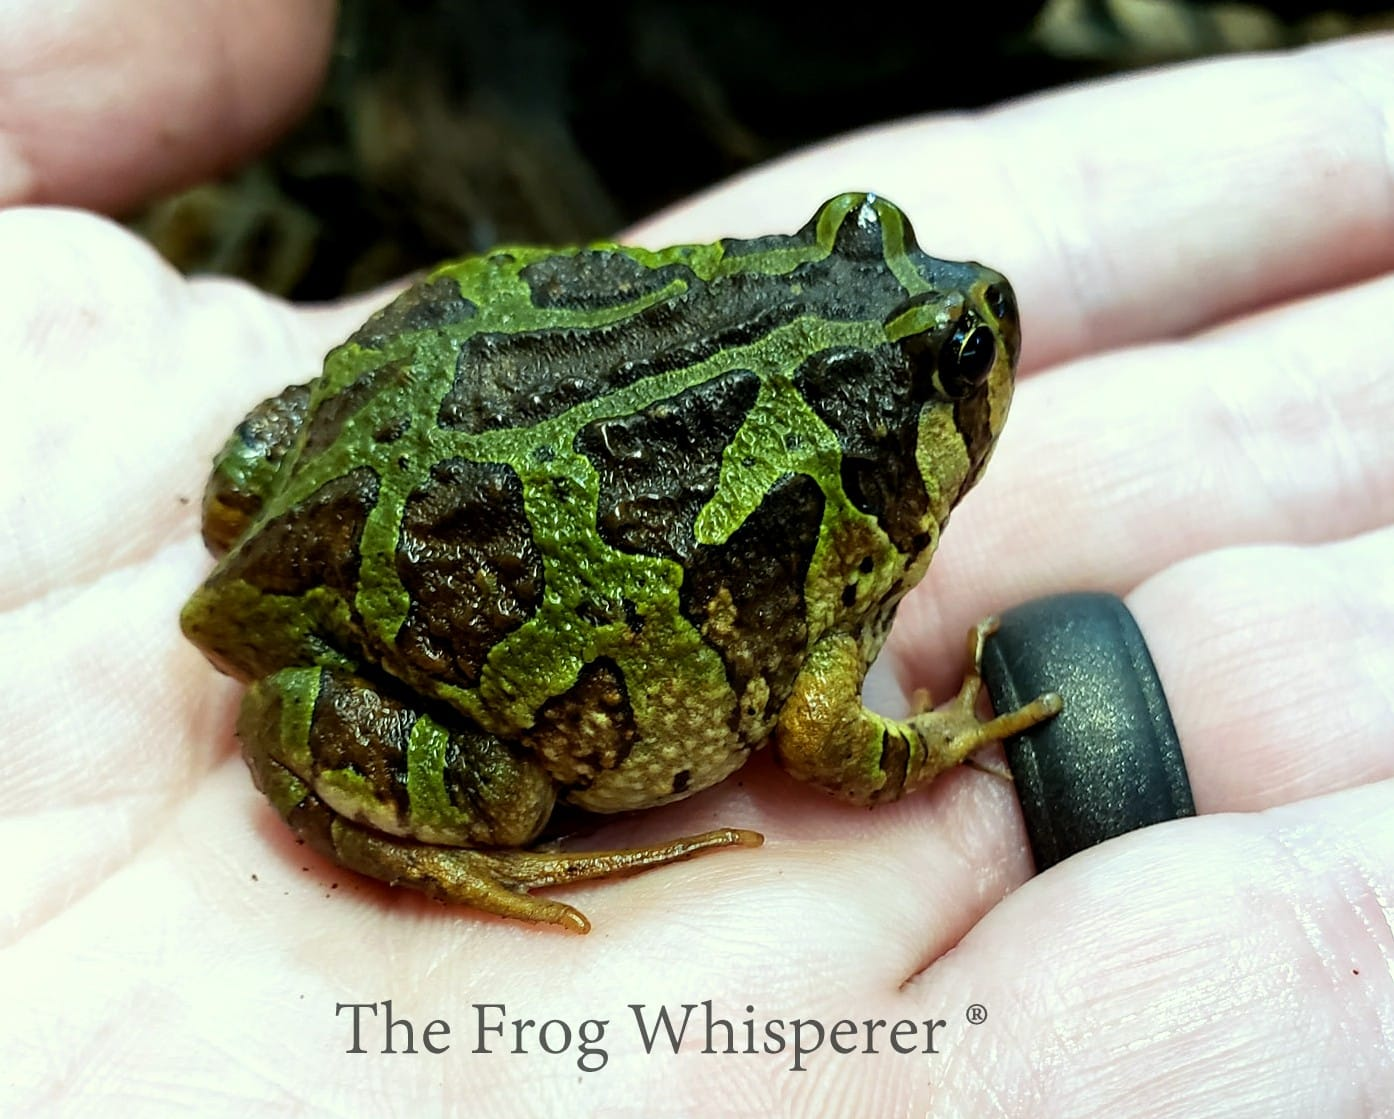 mossy frog on hand